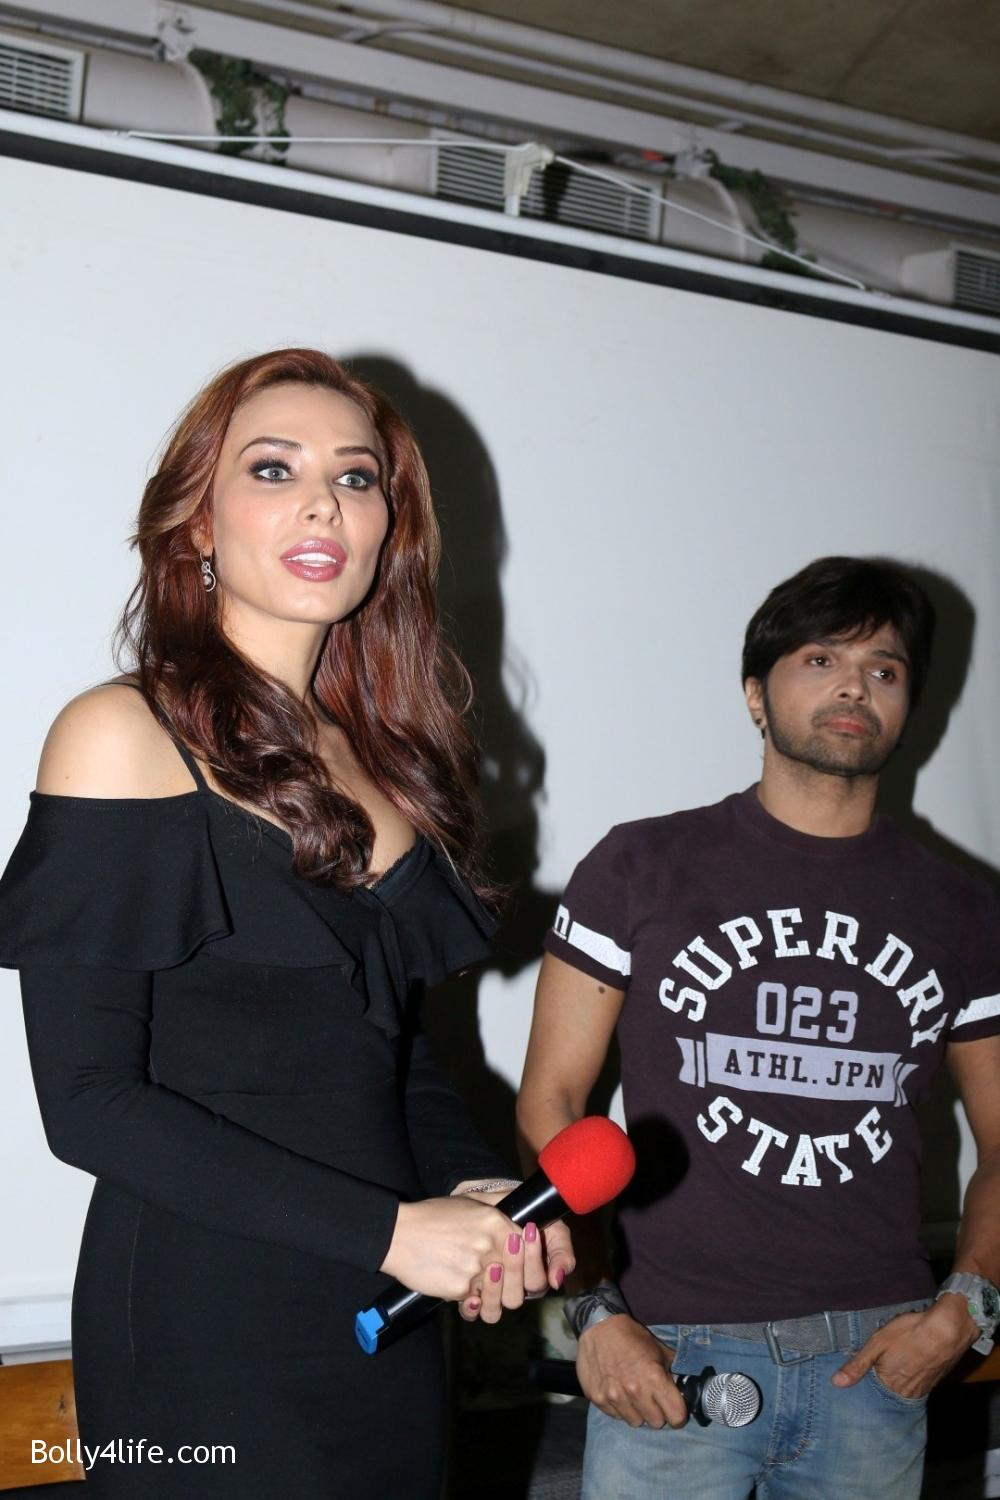 Salman-Khans-friend-Iulia-Vantur-during-teaser-launch-of-song-Every-Night-and-Day-3.jpg